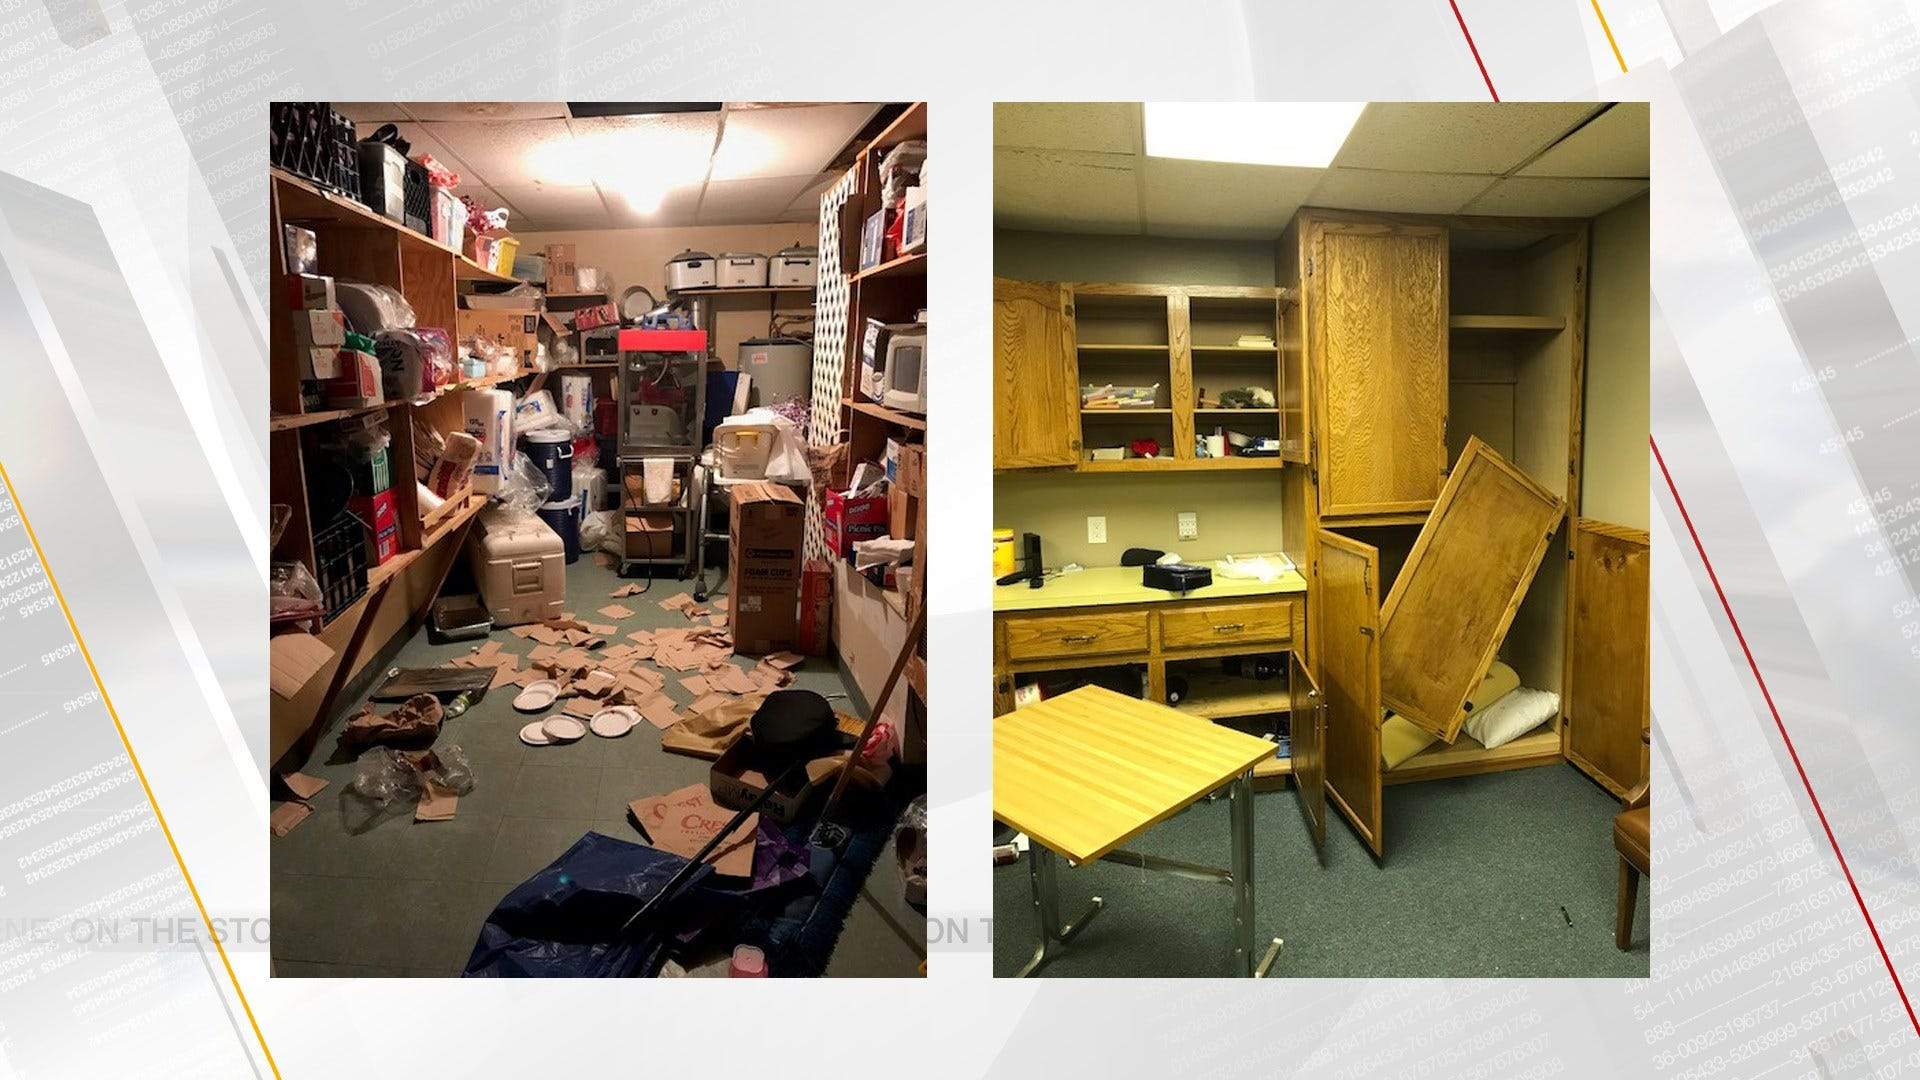 Vandals Cause Thousands Of Dollars In Damage At Metro Church